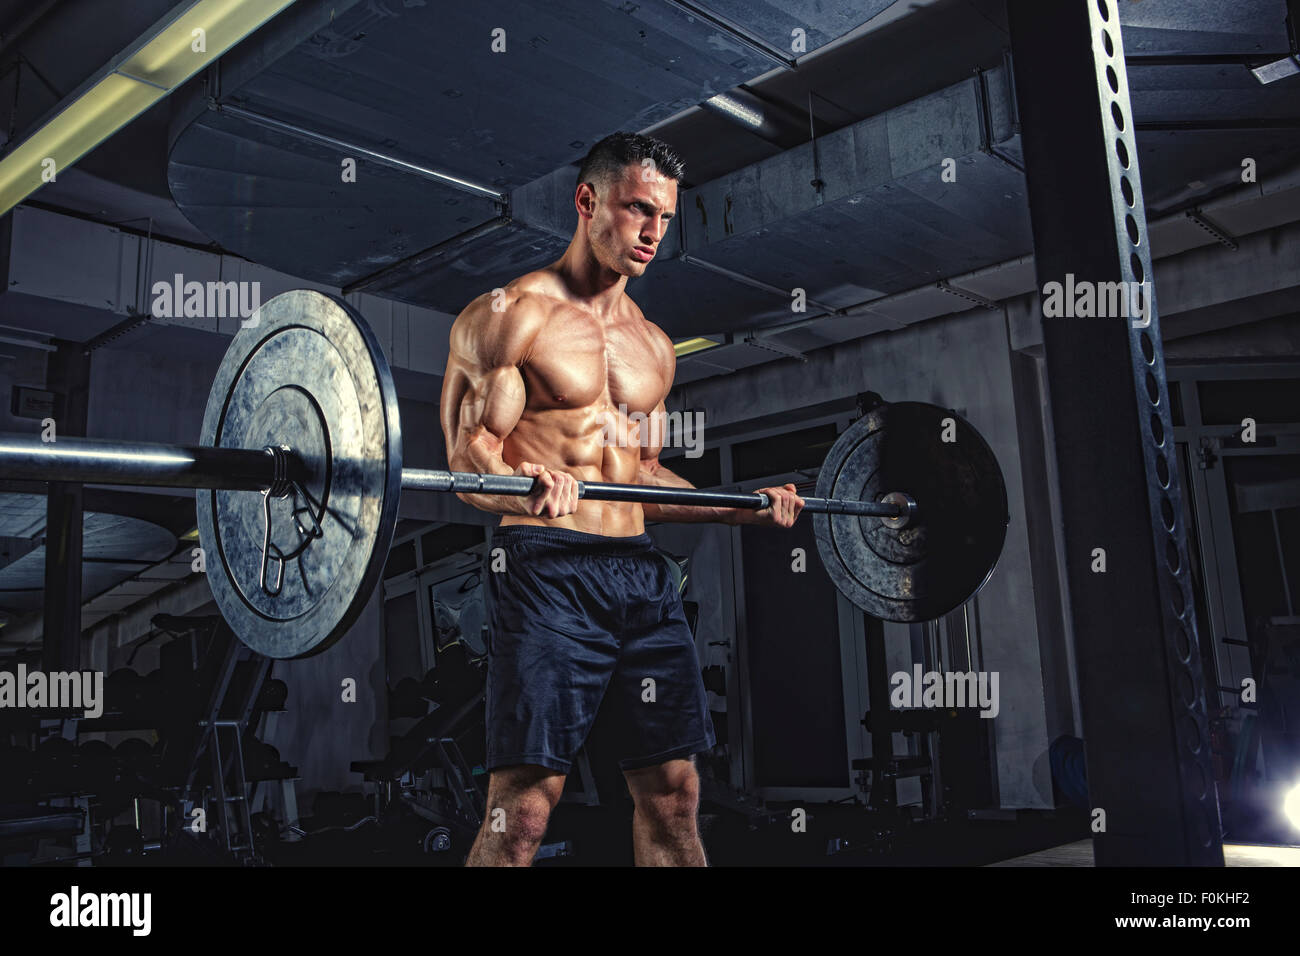 Physical athlete weightlifting - Stock Image